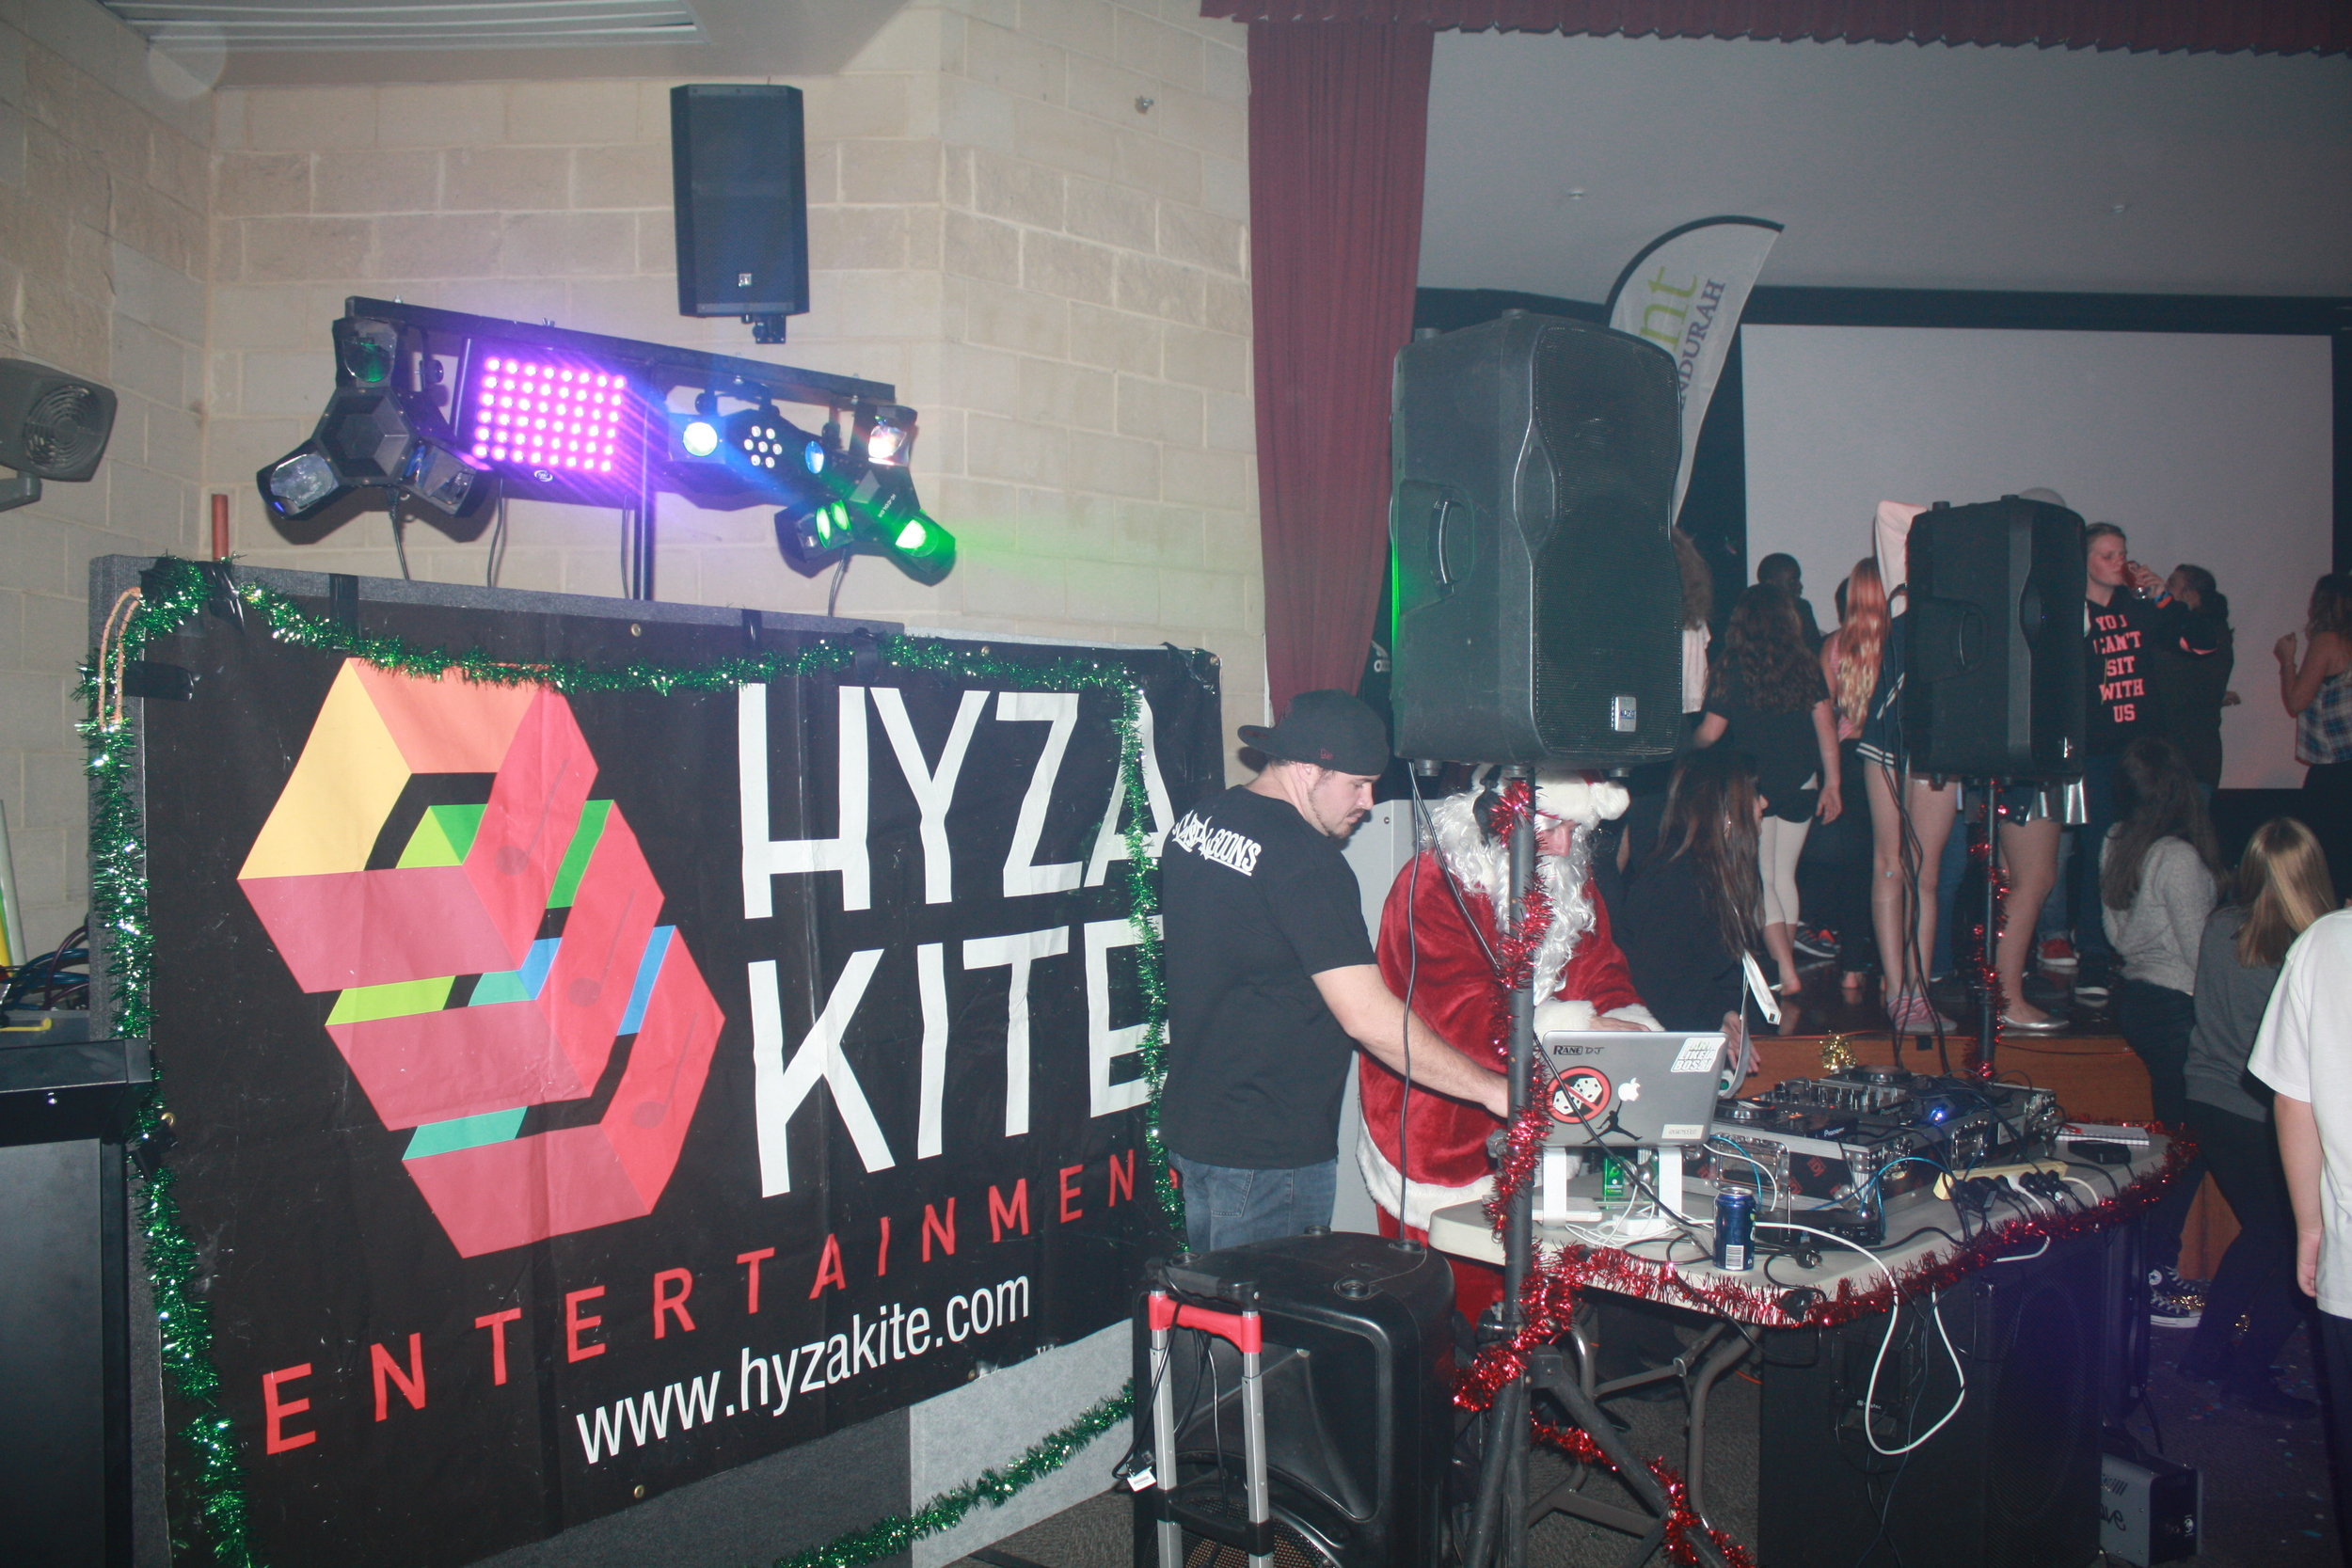 Hyza Kite Entertainment provide a safe environment for tweens to have a good time